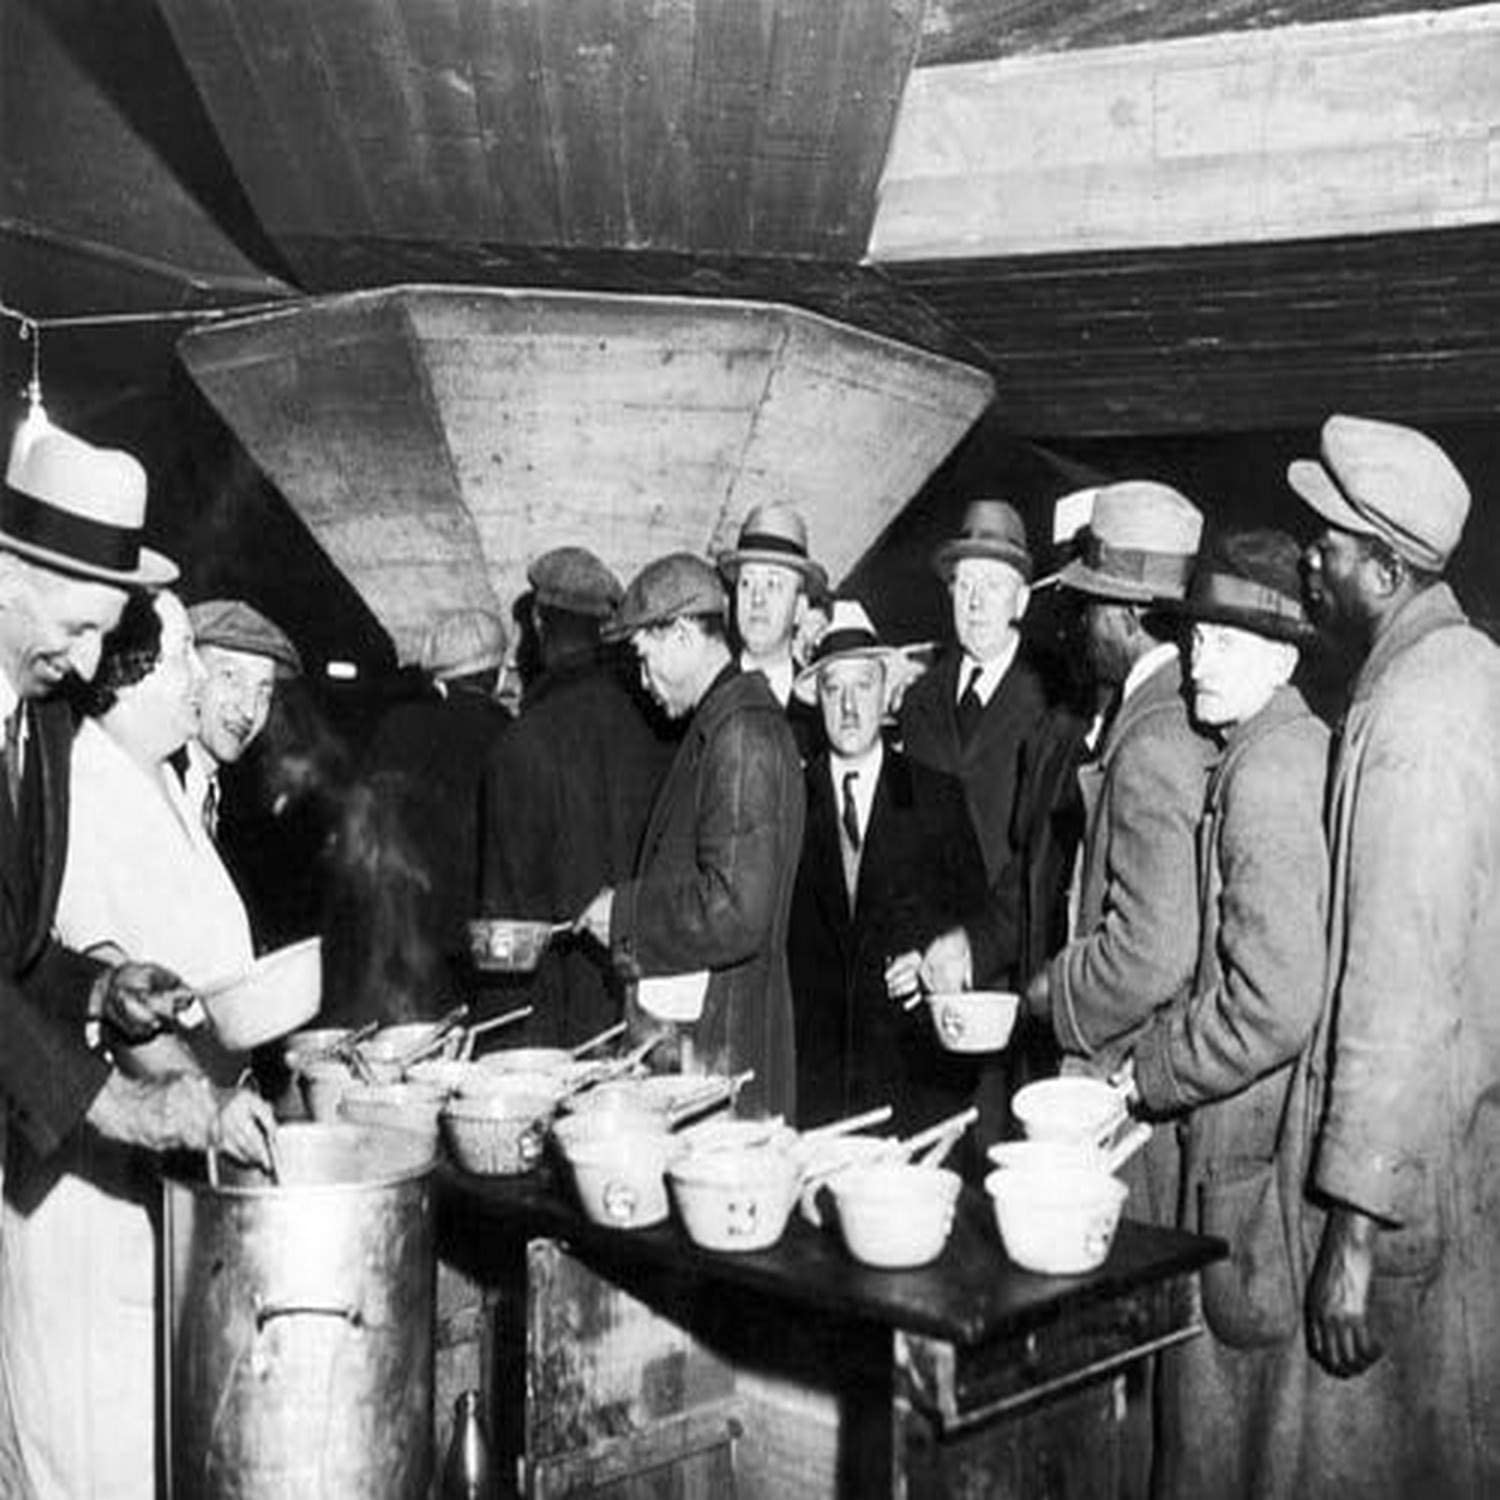 Amazon Com Soup Kitchen 1931 Na New York City Soup Kitchen During The Great Depression 1931 Poster Print By 18 X 24 Posters Prints